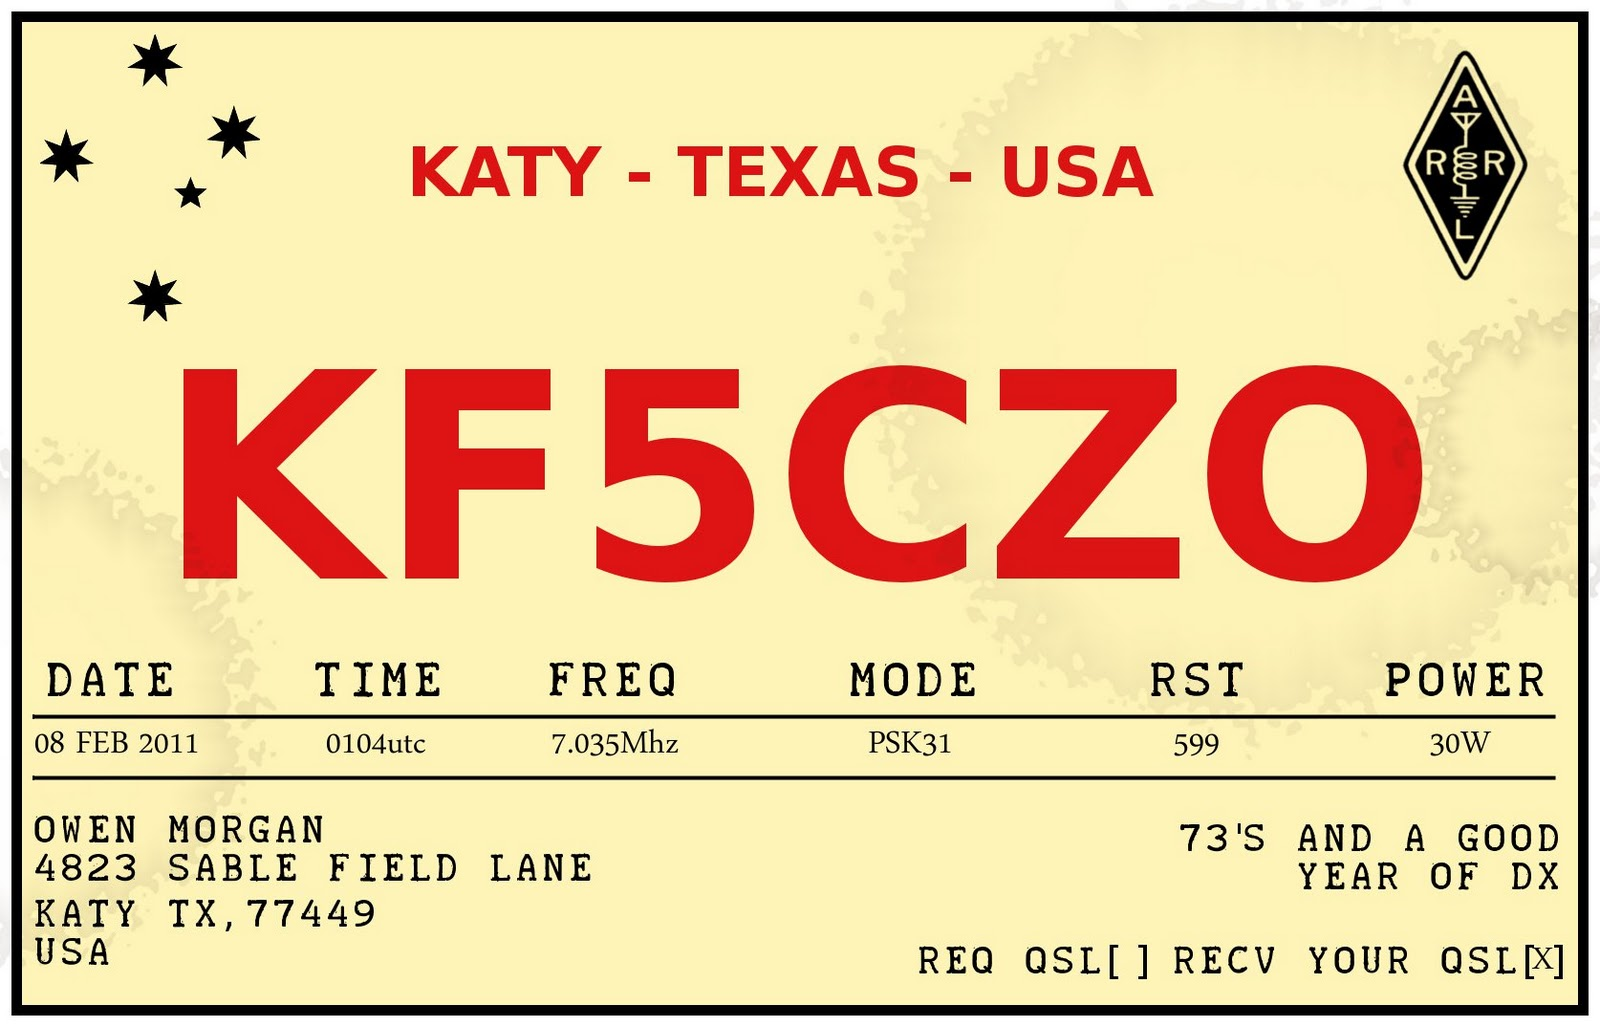 KFCZO Retro QSL Card Design - Qsl card template